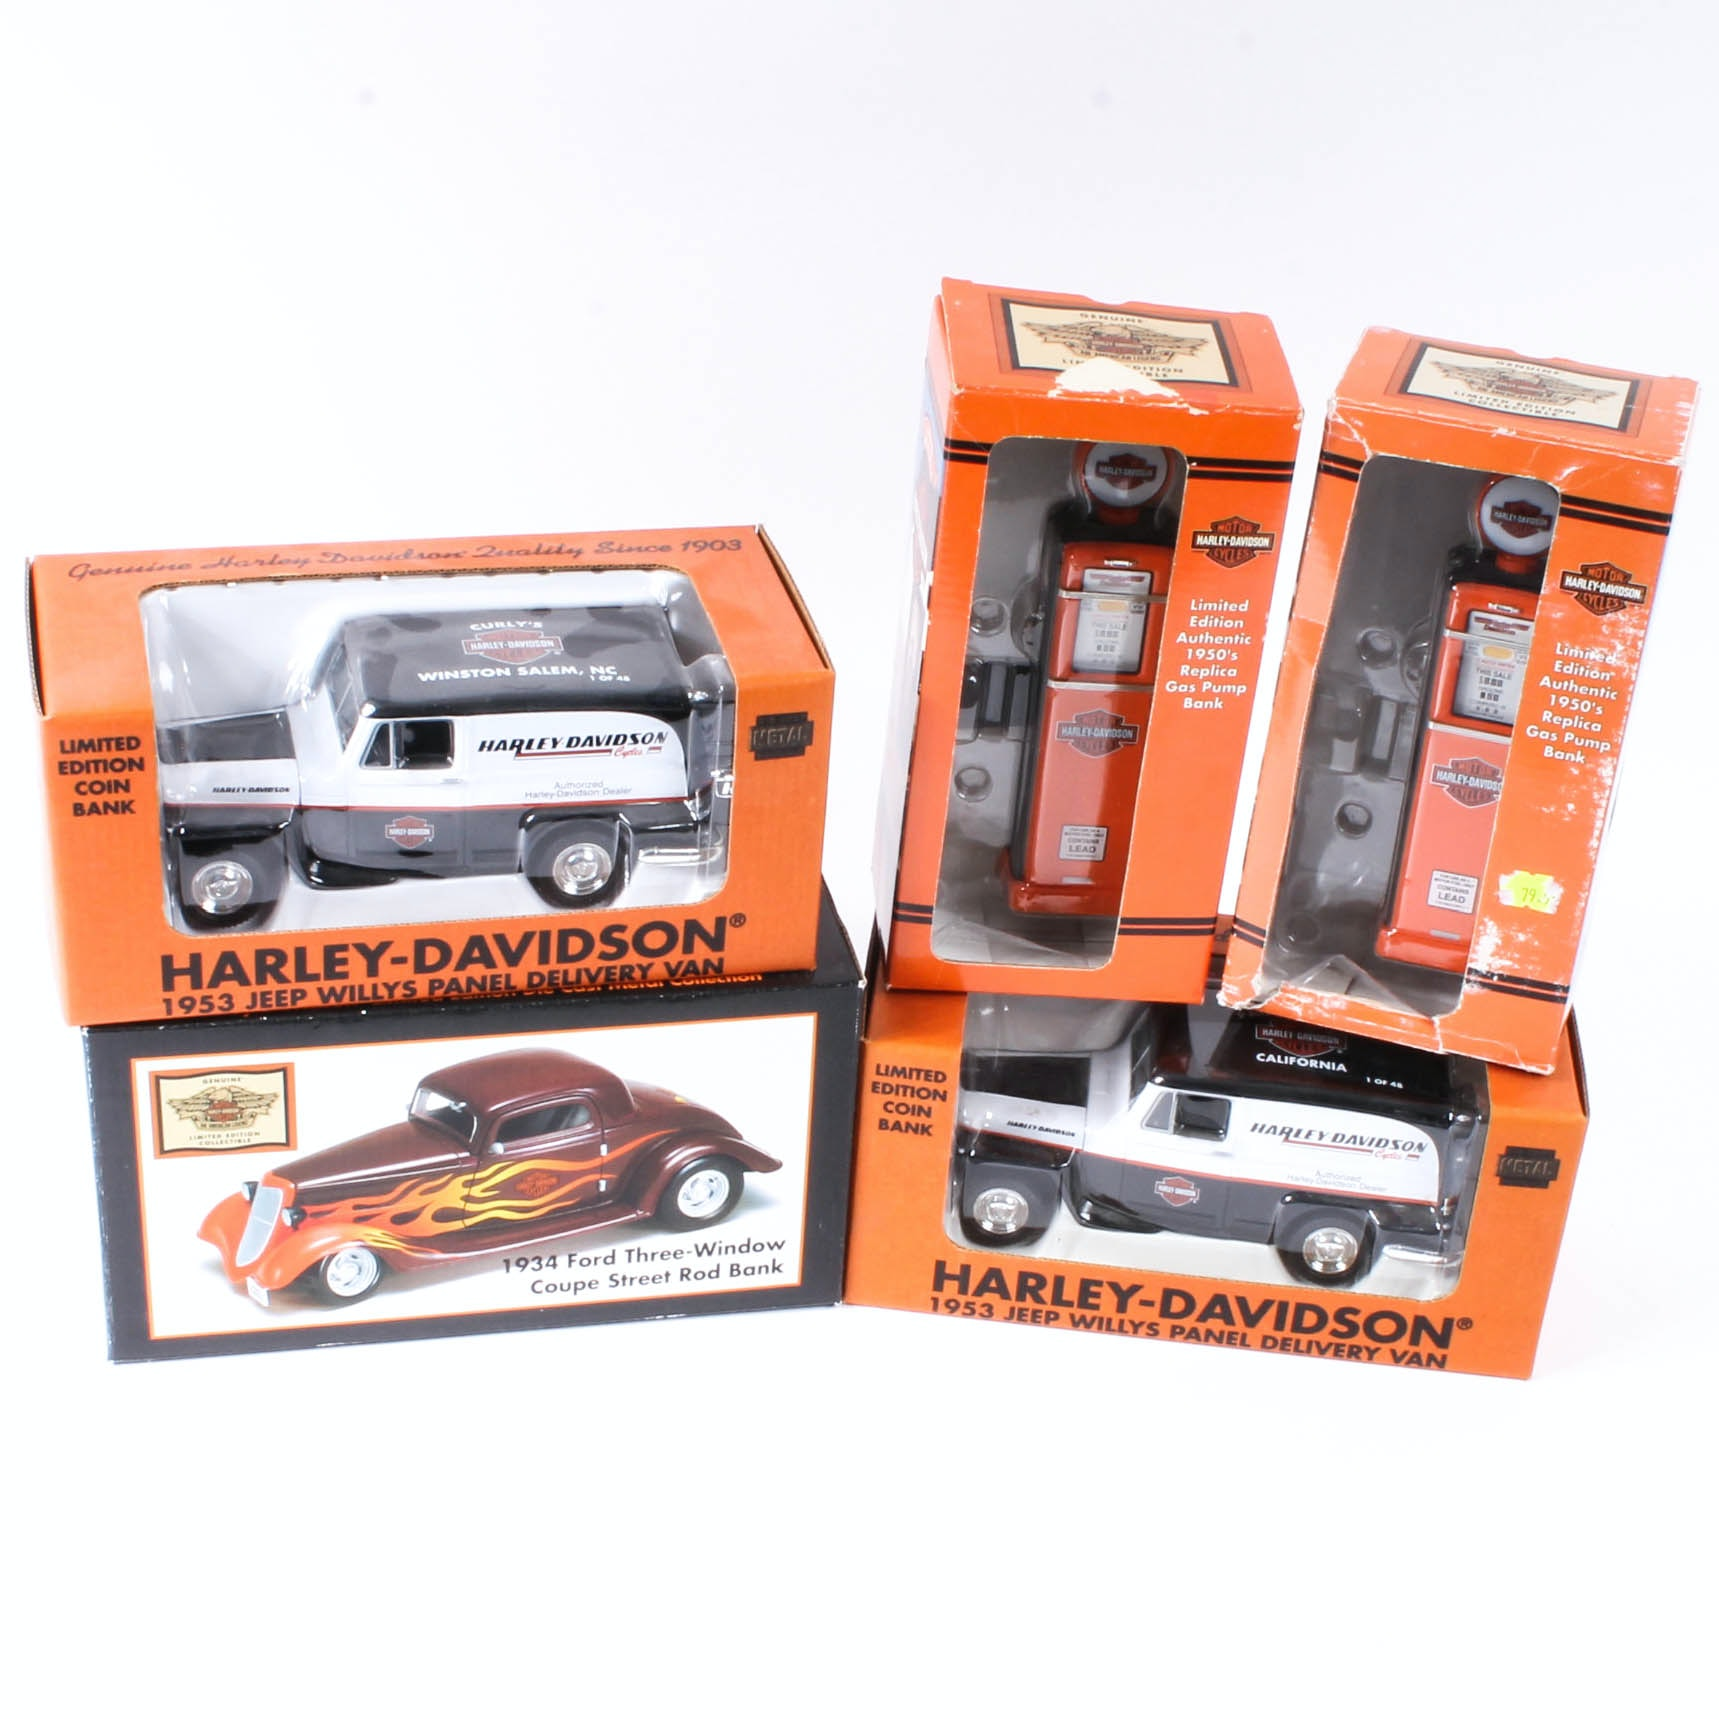 Harley-Davidson Branded Die-Cast Coin Banks